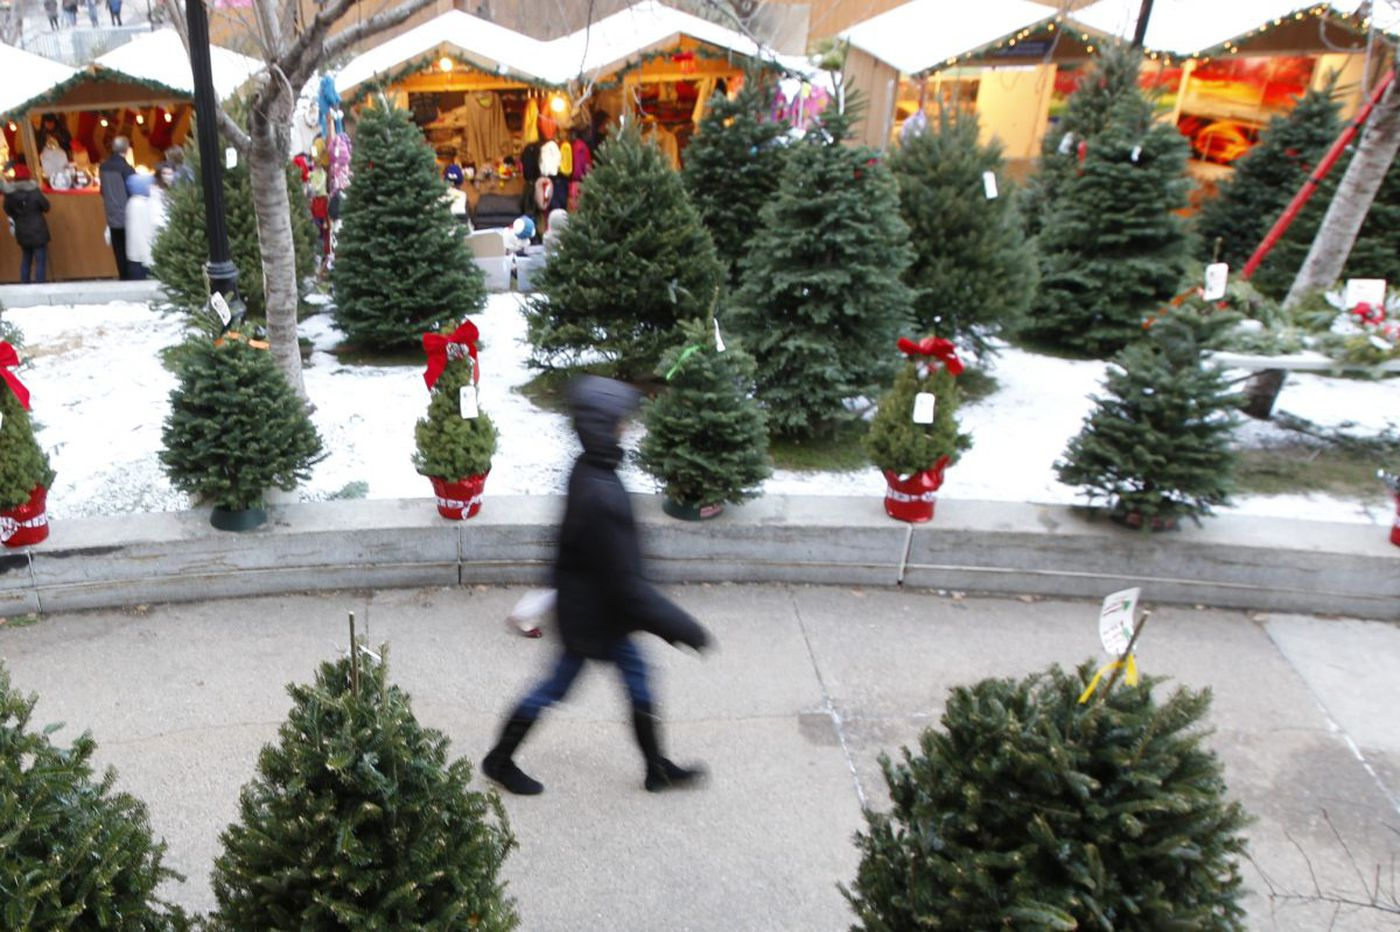 Philly can be thankful that Christmas Village is back at LOVE Park | Editorial